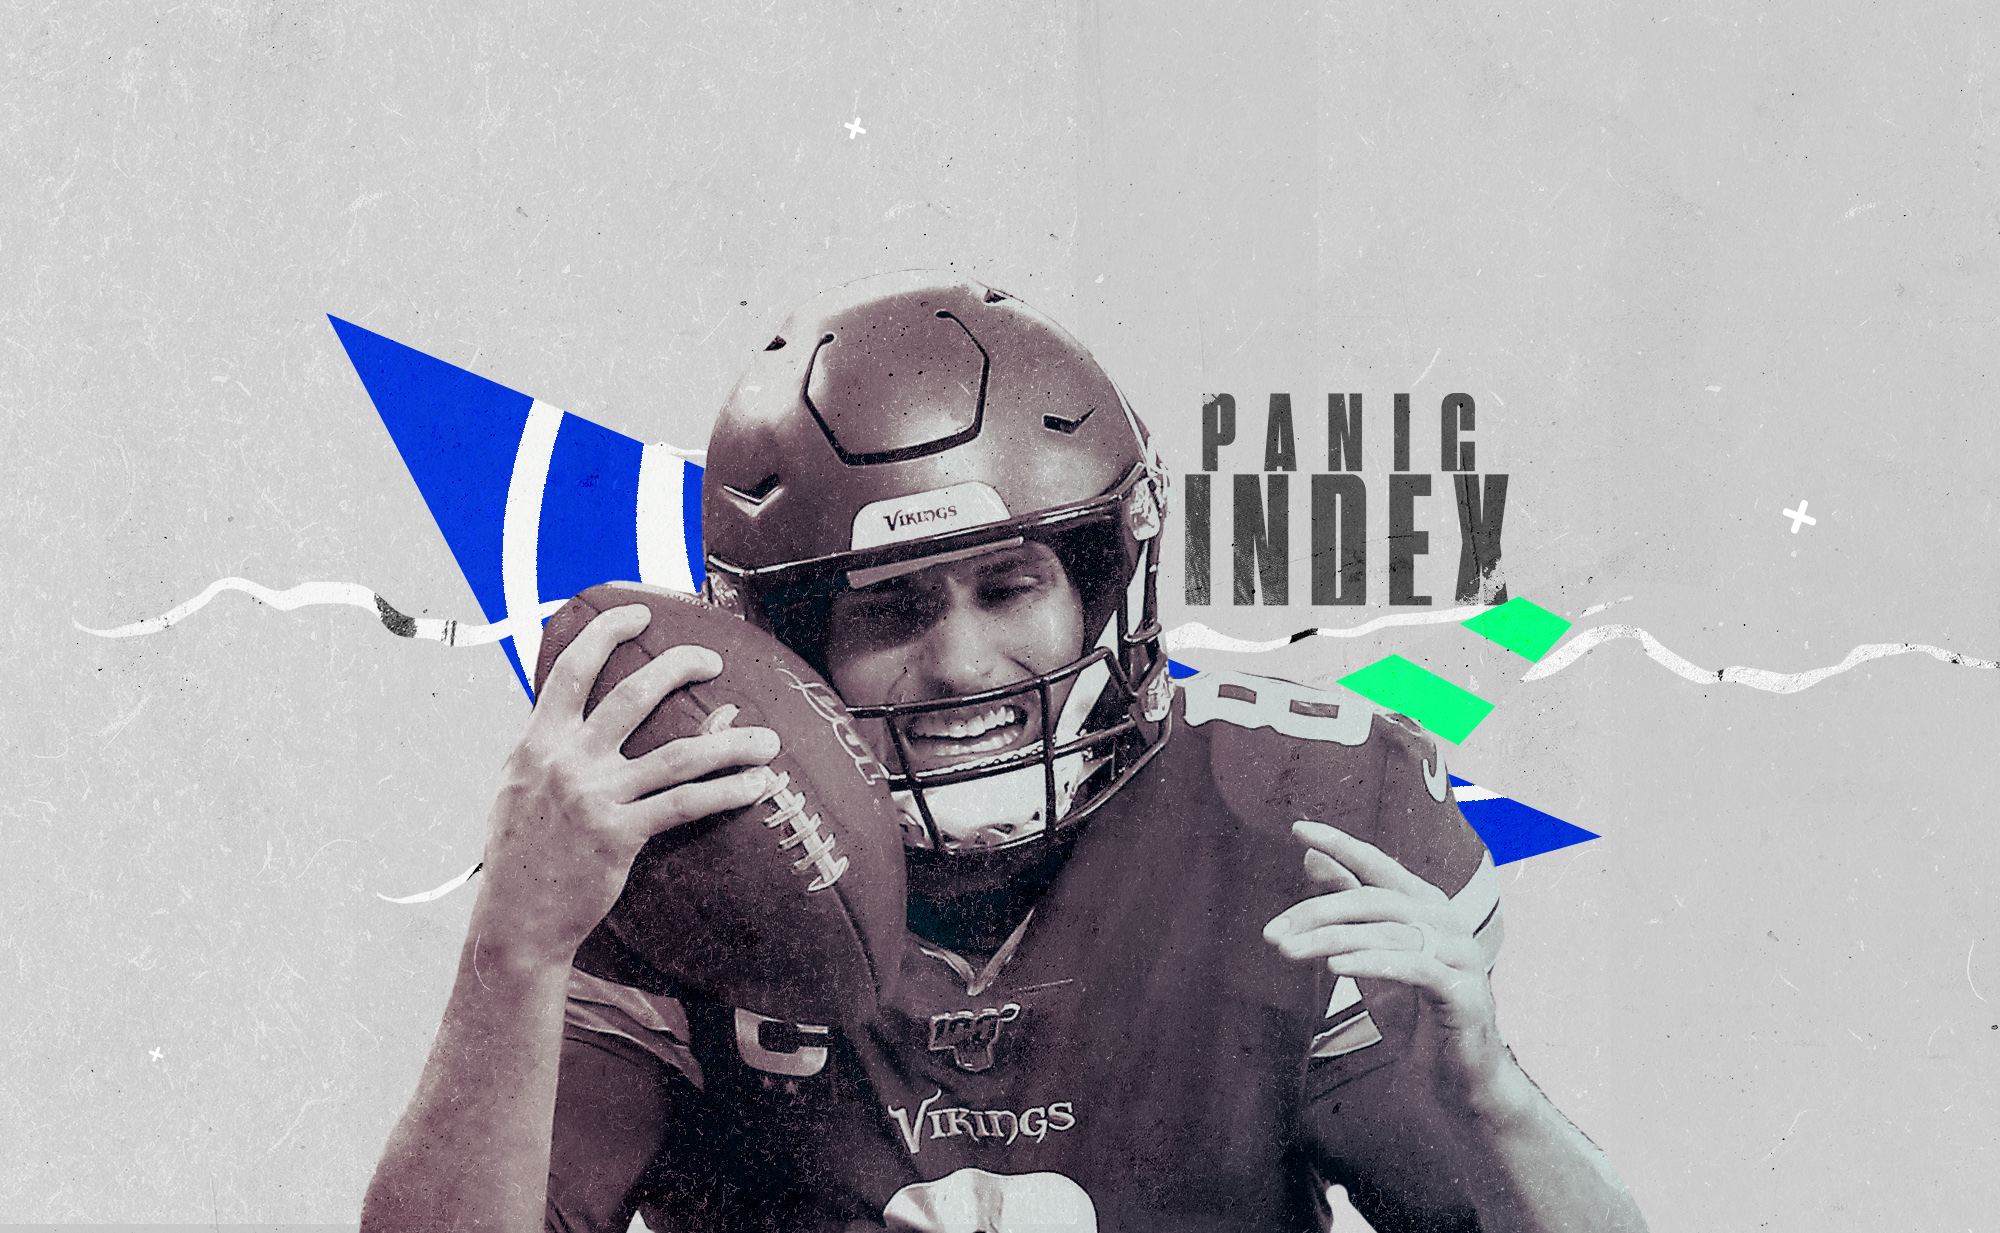 Vikings QB Kirk Cousins holds ball to his cheek, superimposed on a background with geometric shapes